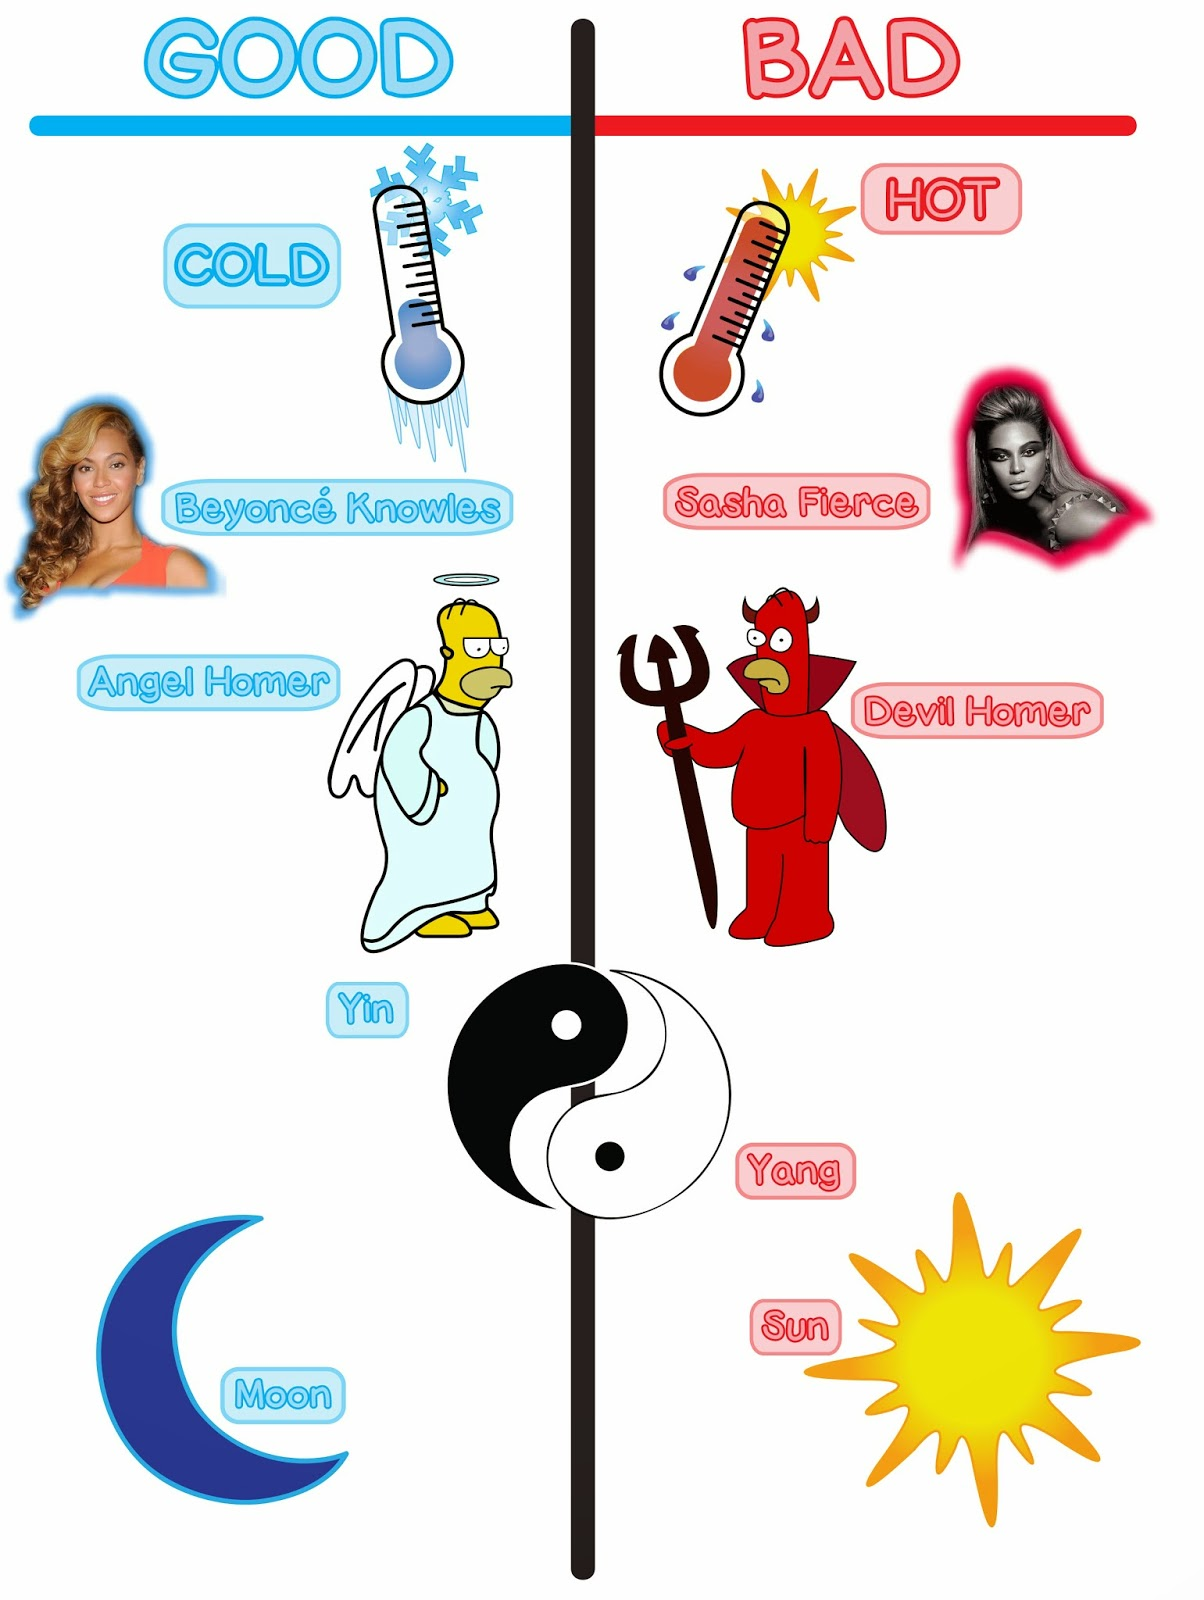 The Good And Evil In Everyone Good Verses Evil As Symbols